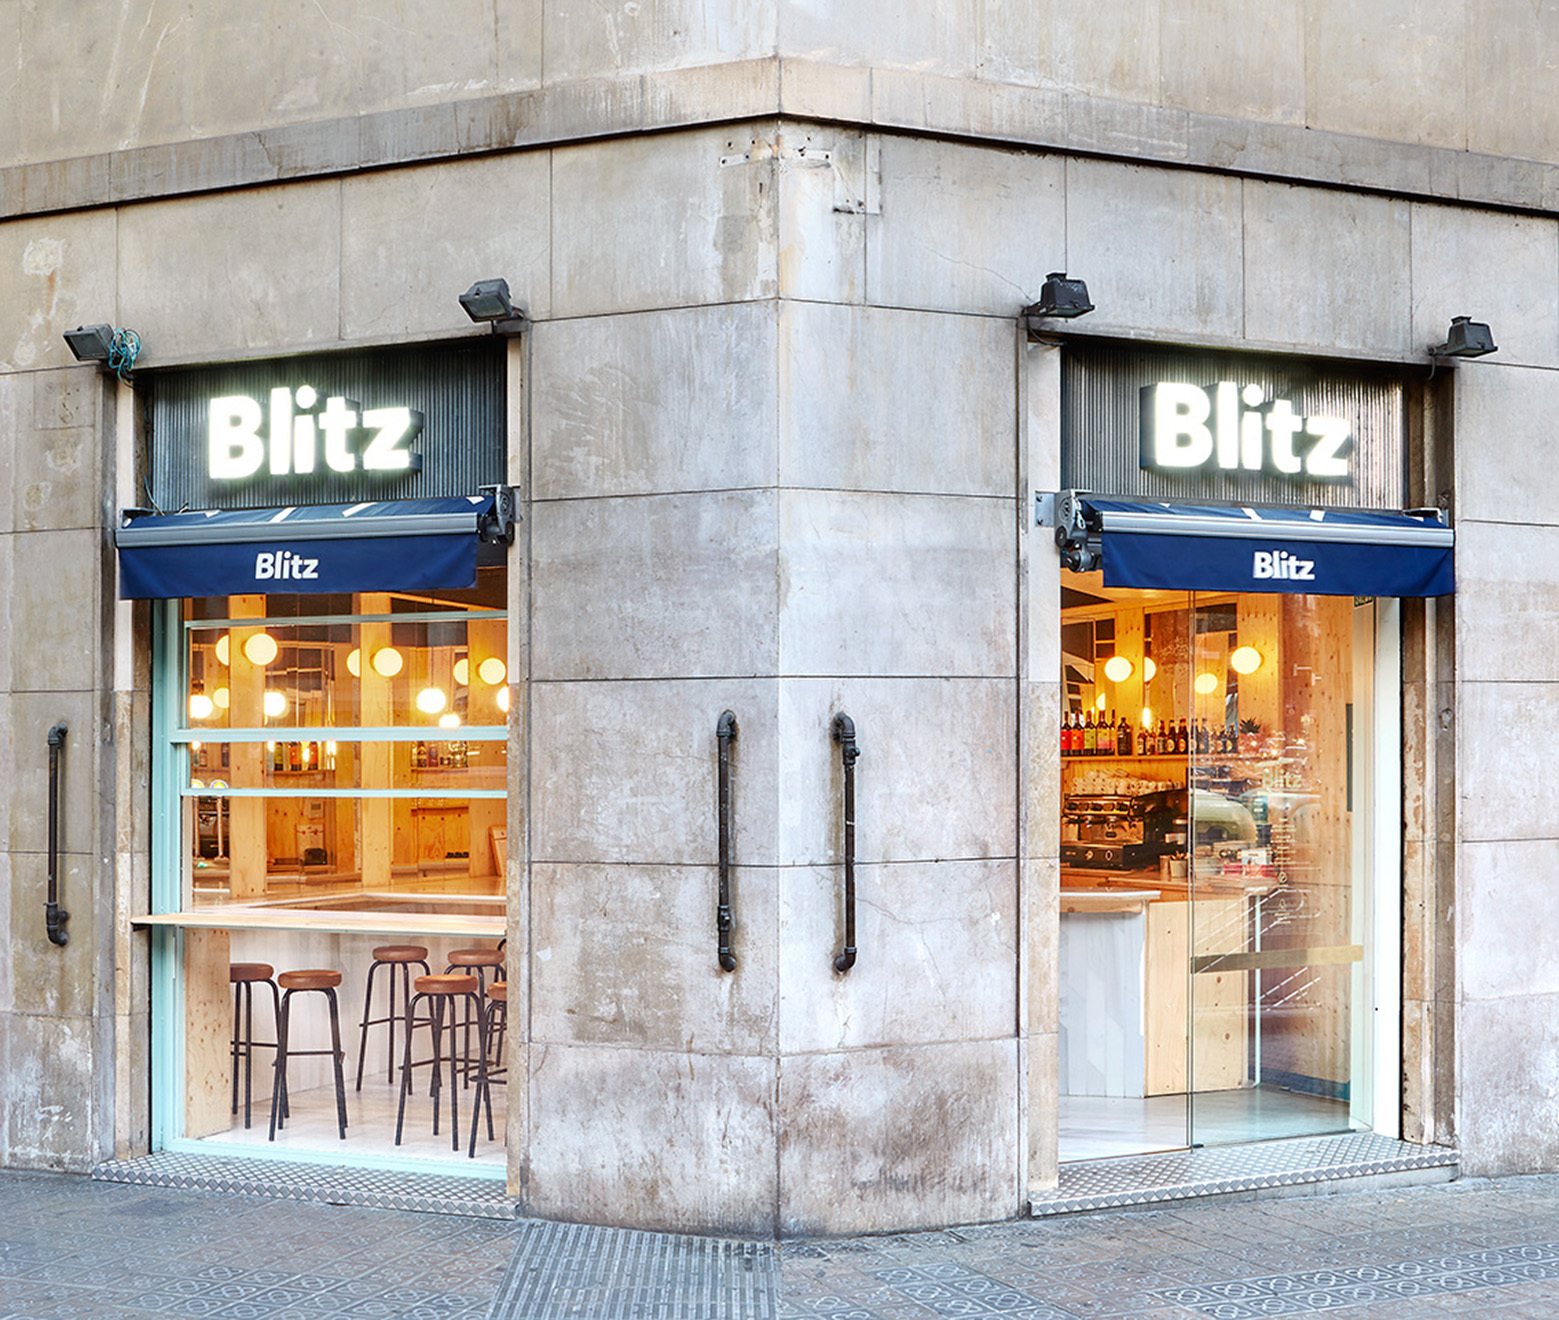 bureaucratic control sandwich blitz Bureaucratic control with respect to managerial control, bureaucracy or famously formal control system is self managed work teams essay at sandwich blitz.